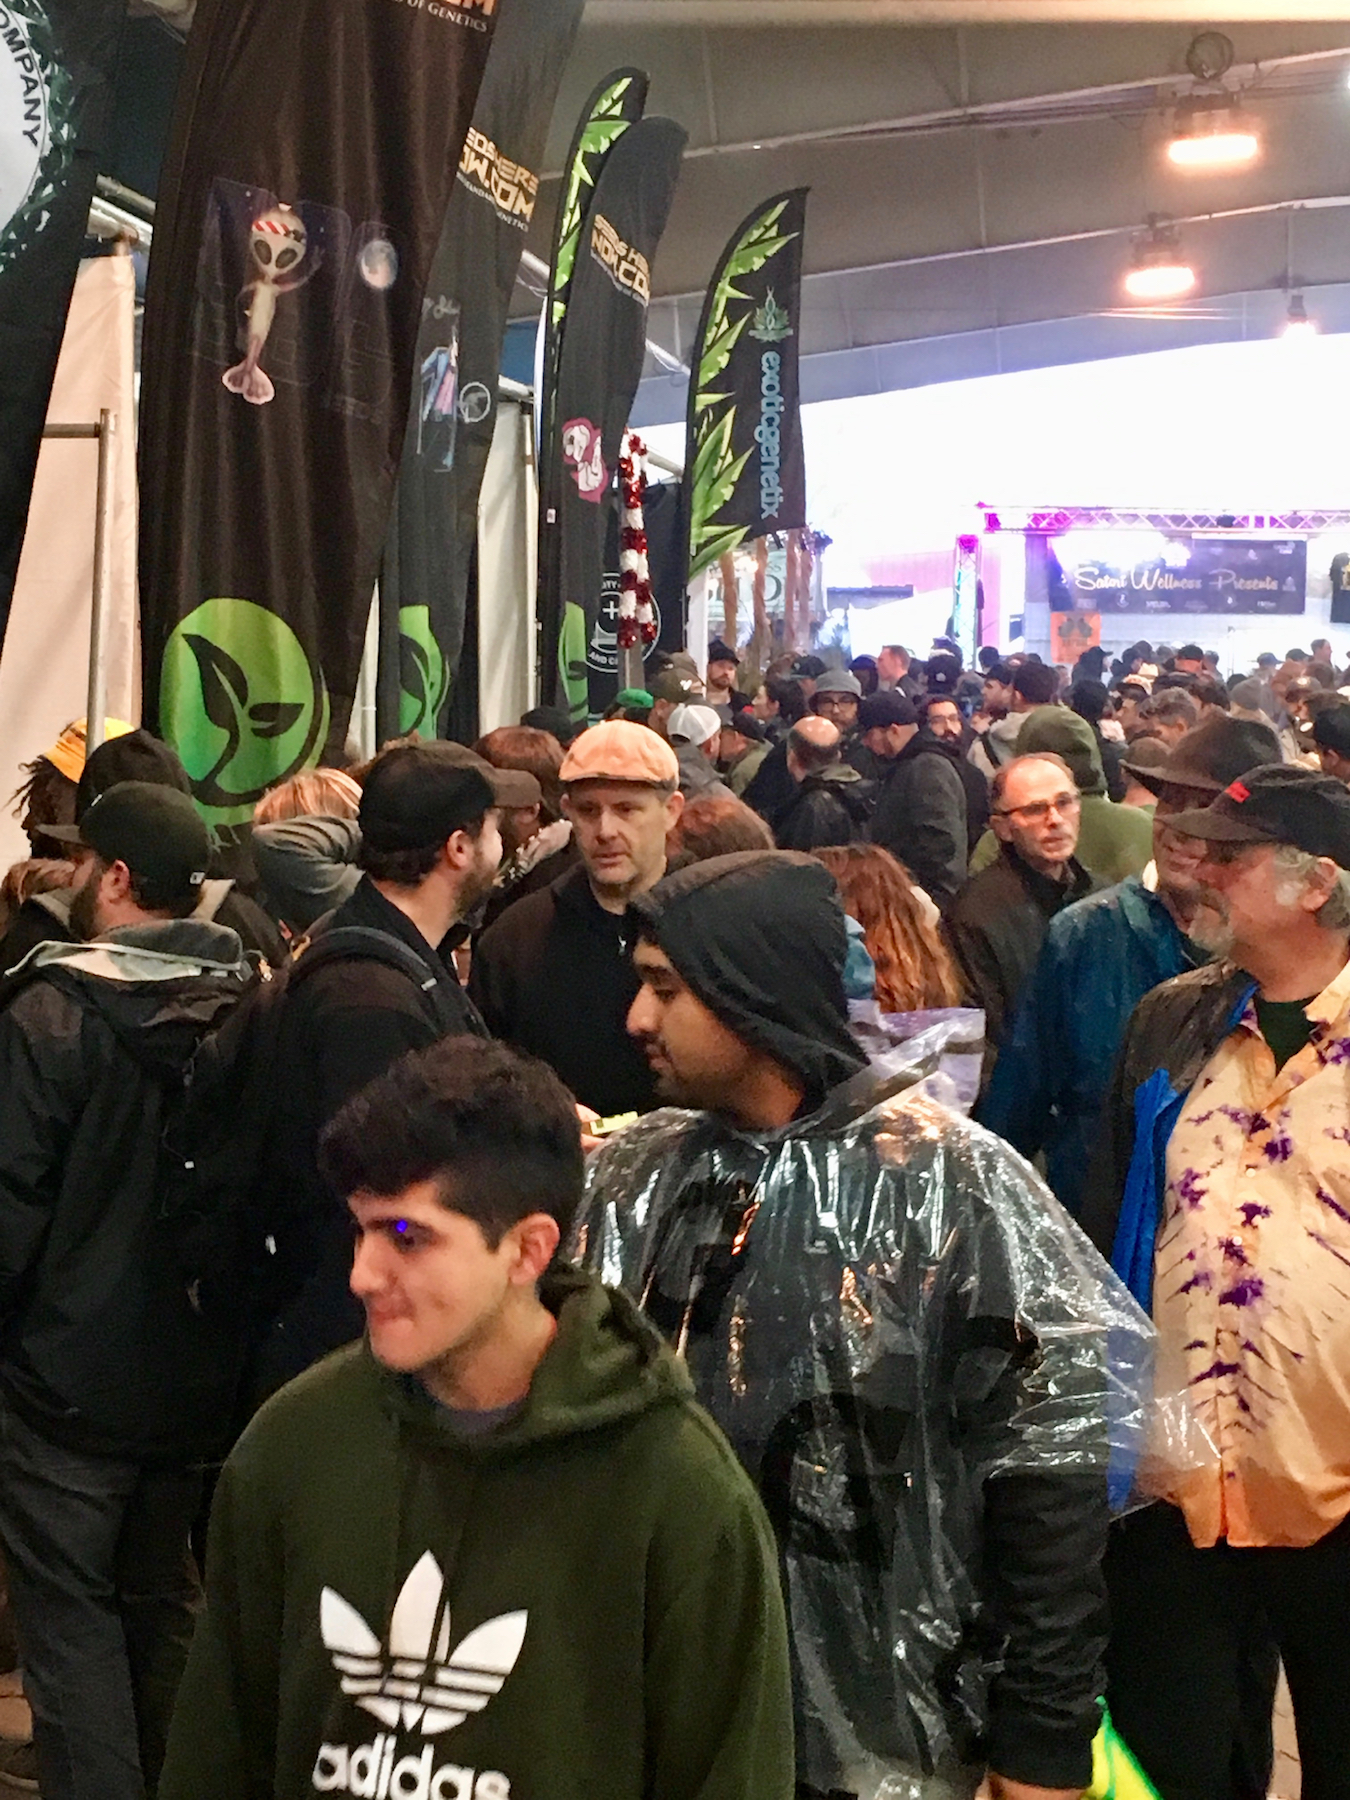 Thousands of growers scooped up millions of dollars in cannabis seeds at the world's largest genetic bazaar. (David Downs/Leafly)